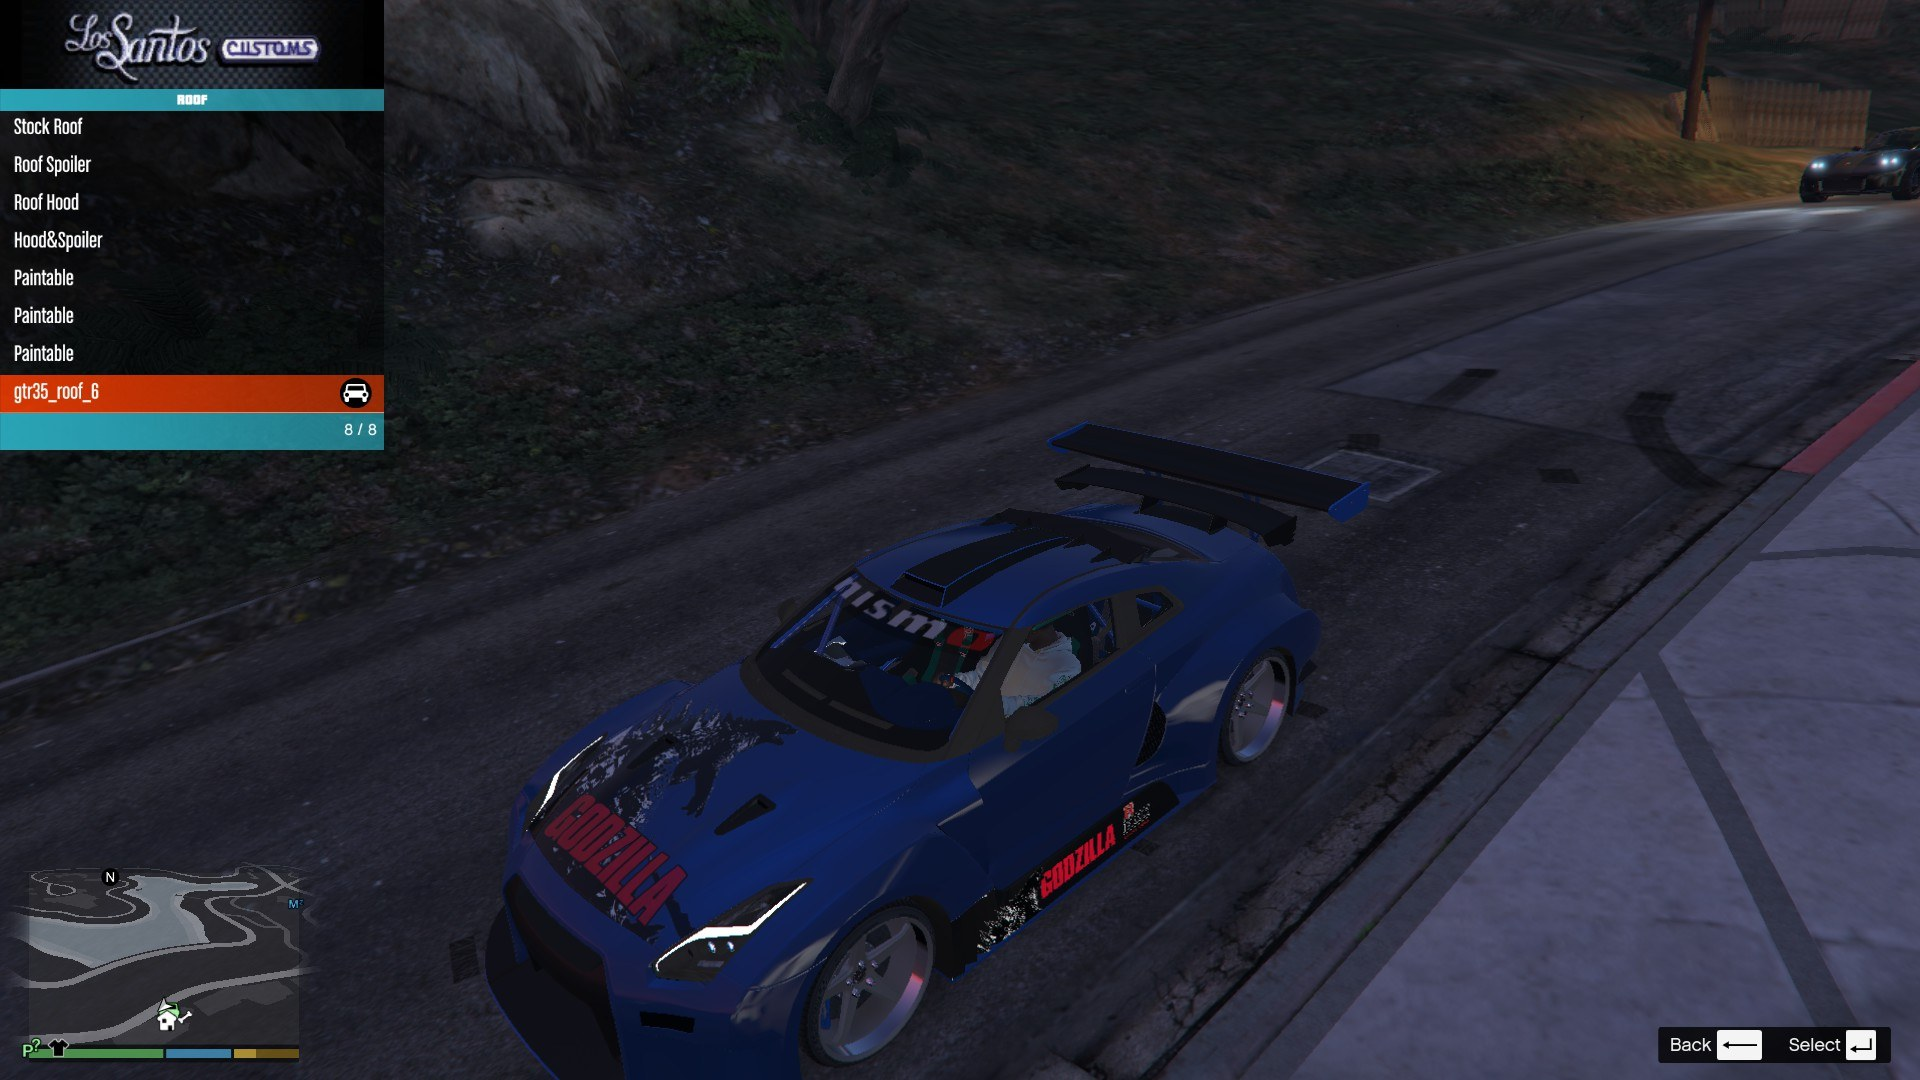 Nissan GTR Widebodykit GTA5 Mods (6)